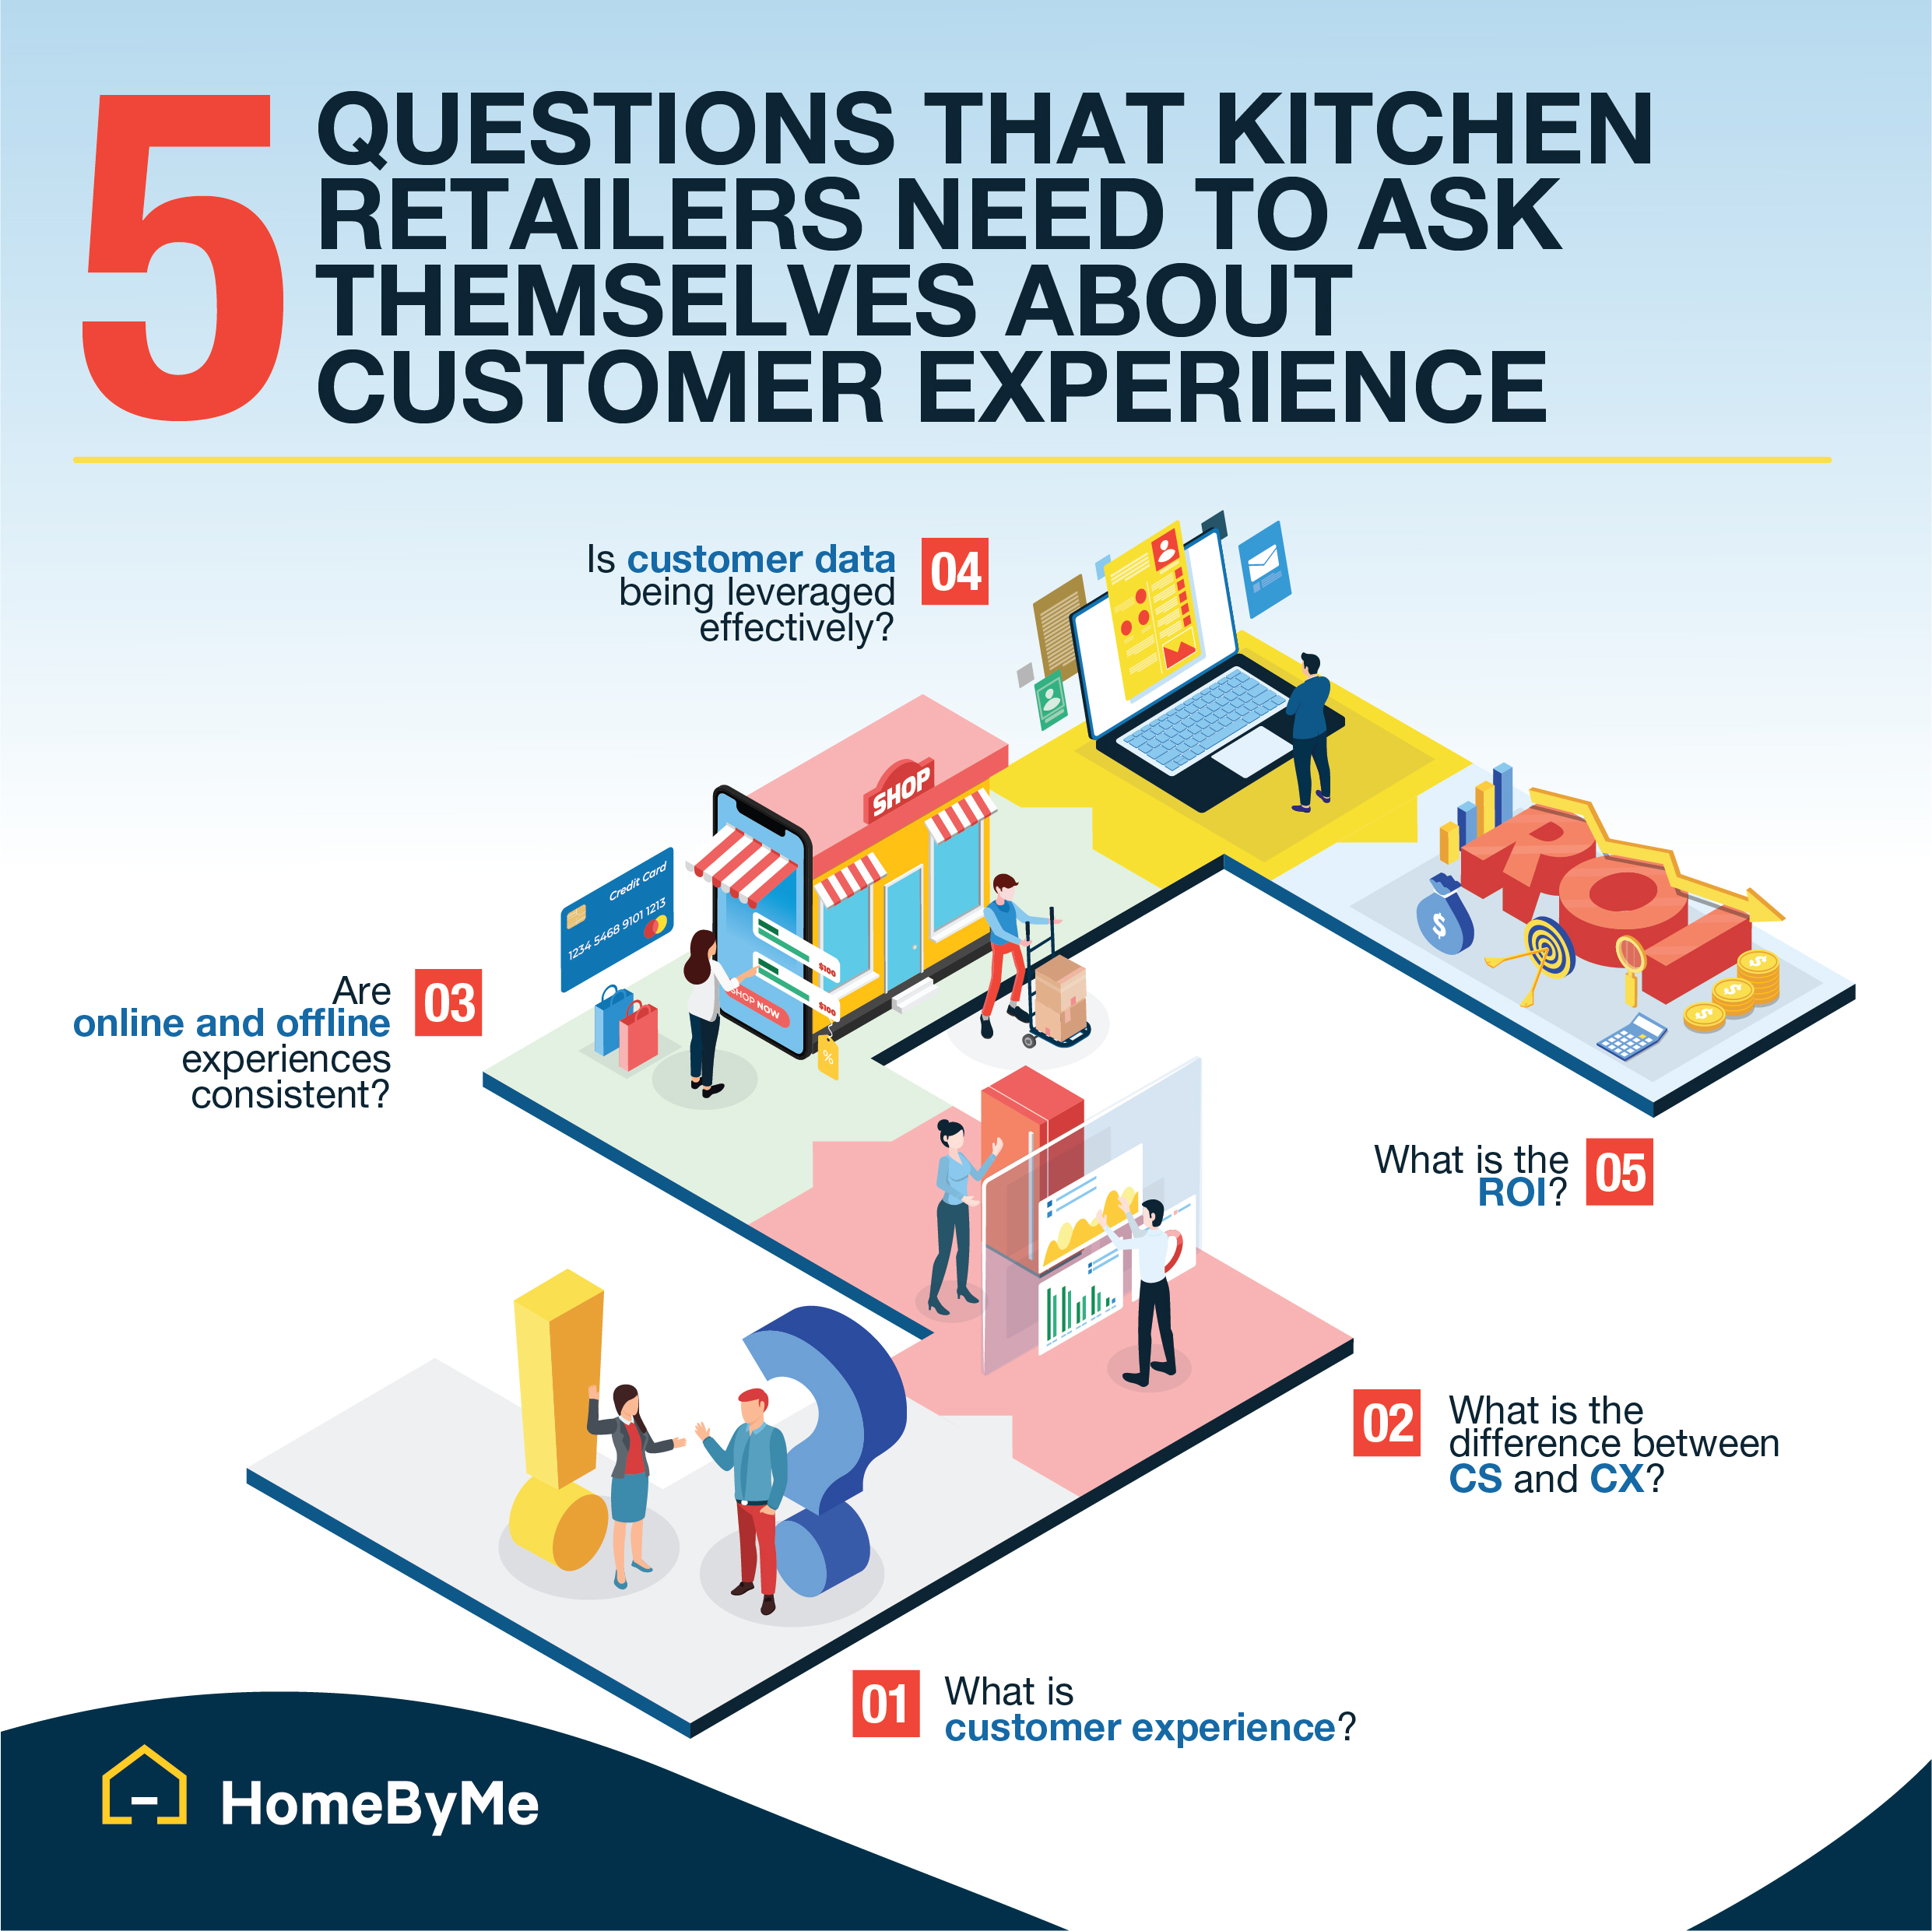 5 questions kitchen retailers need to ask about customer experience